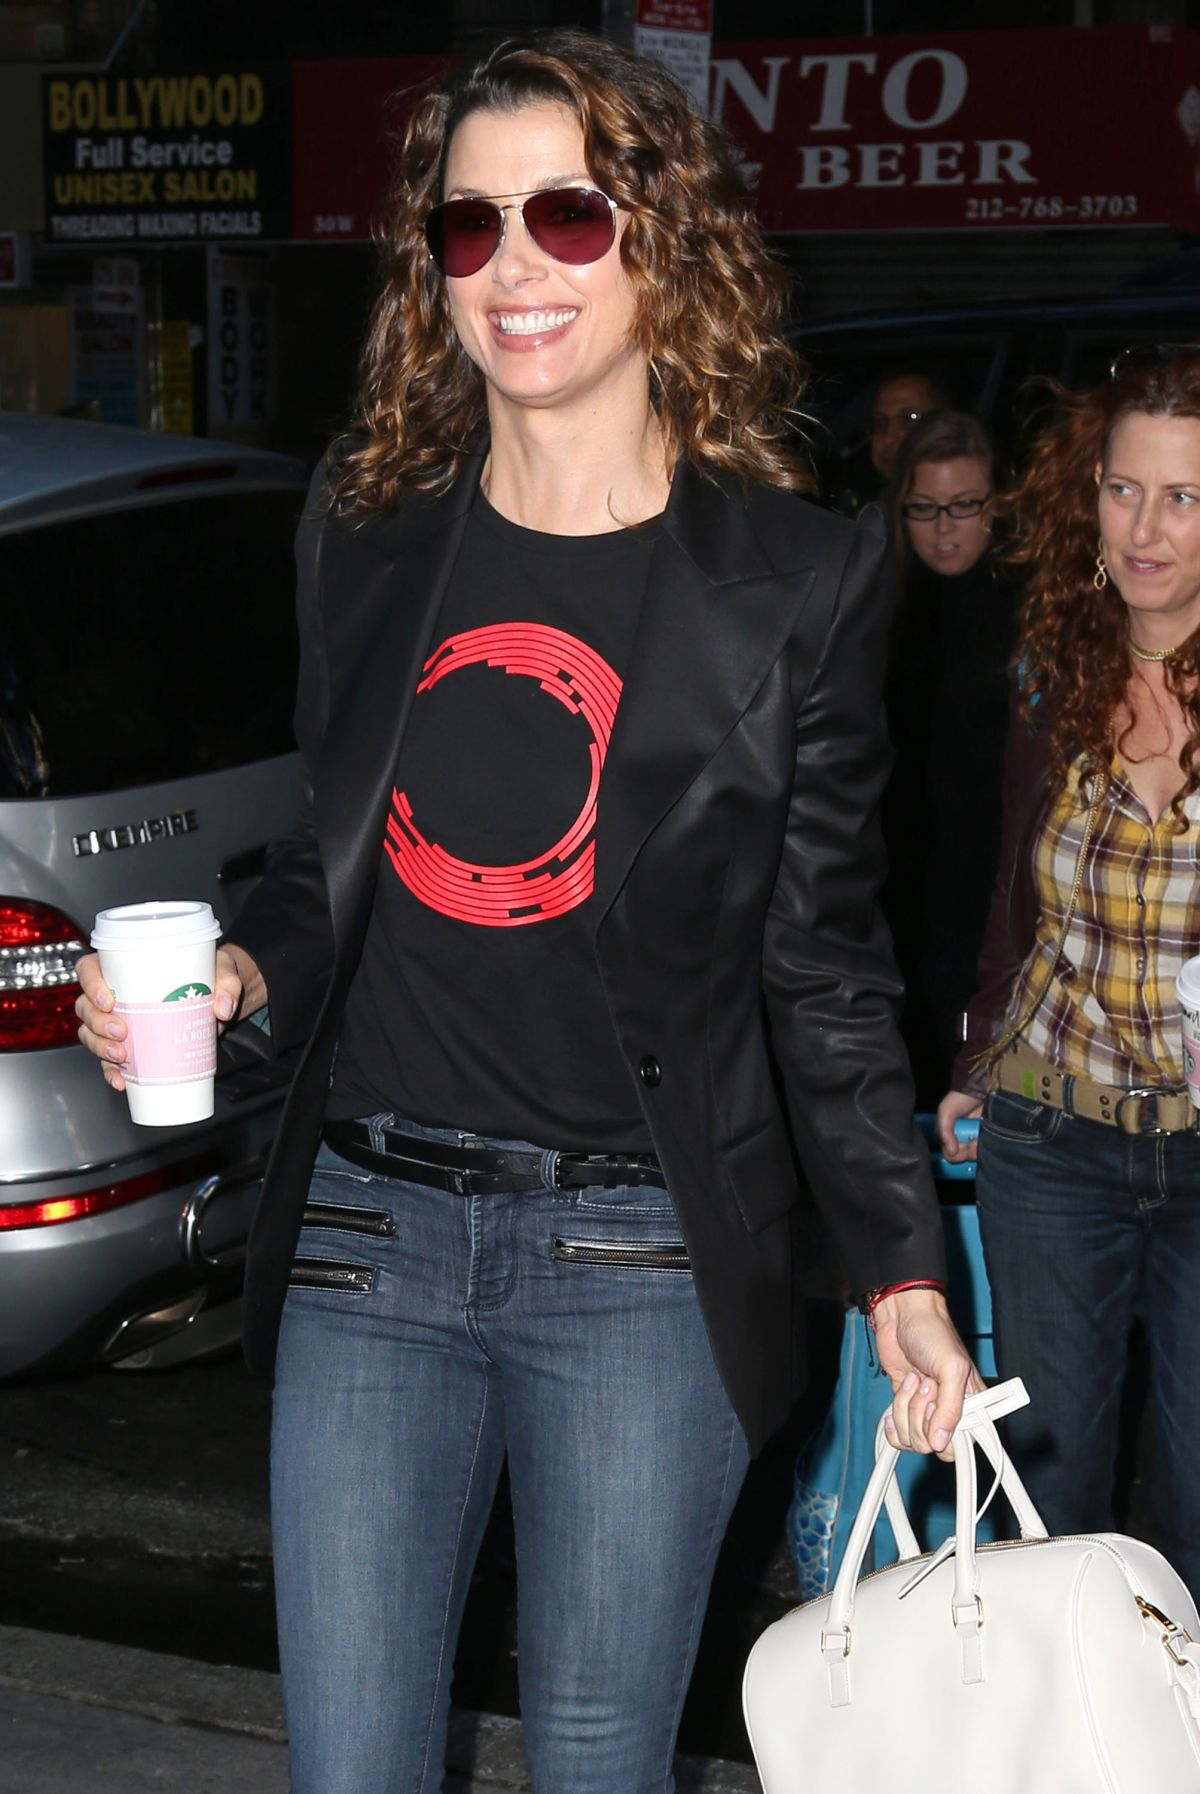 BRIDGET MOYNAHAN Arrives at NBC Studios in New York